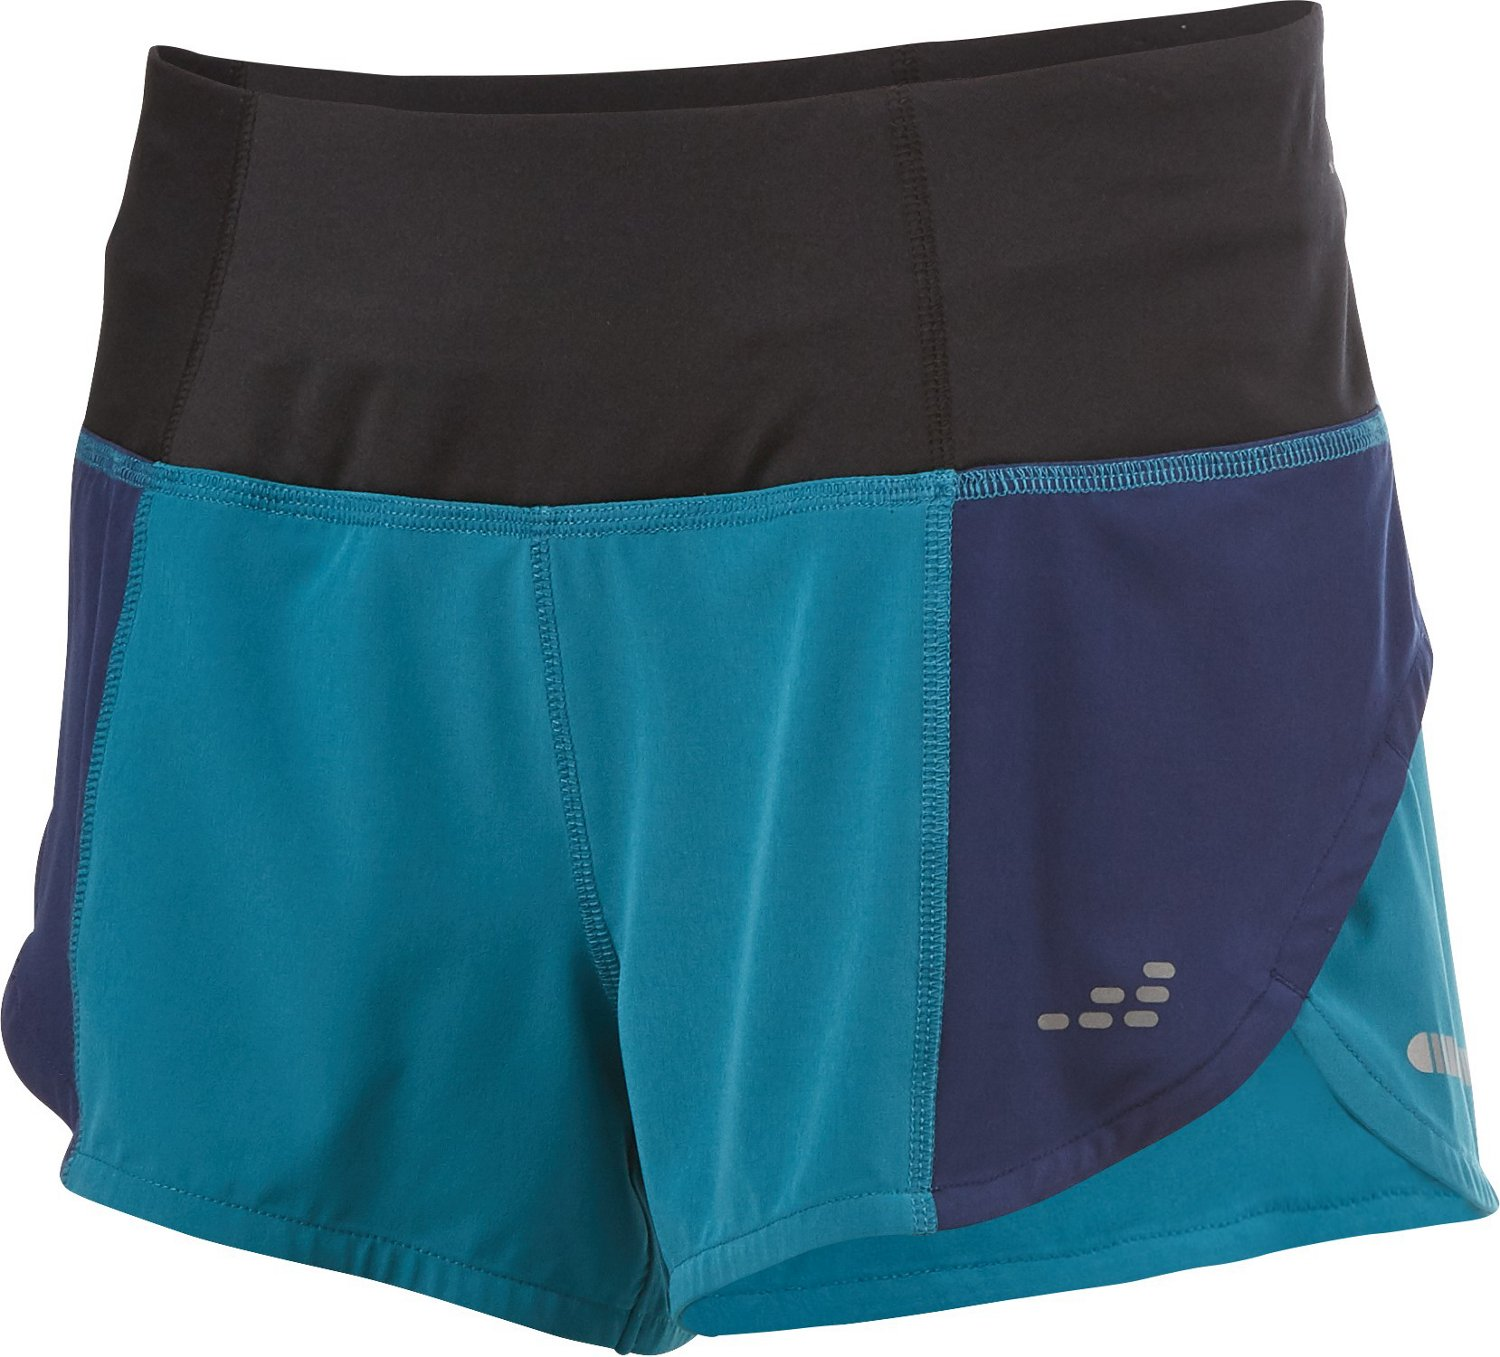 15e1e8e9f777 Display product reviews for BCG Women s High Rise Woven Running Shorts